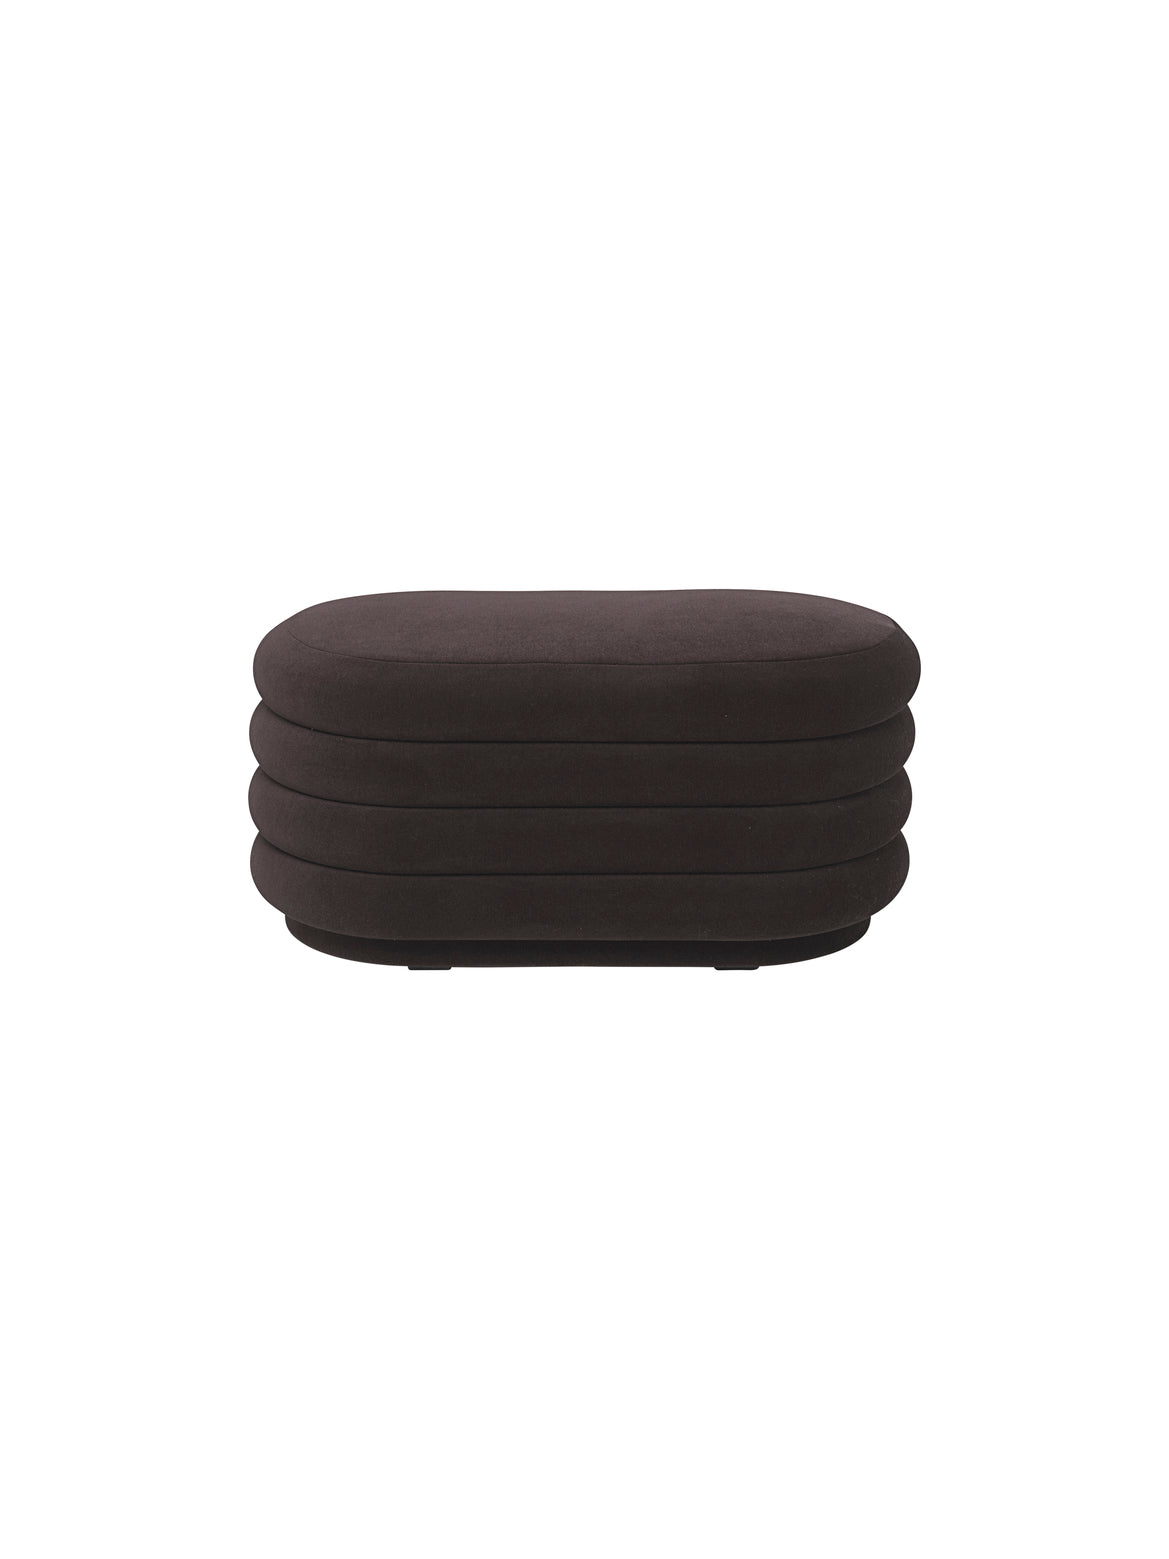 Pouf Oval Medium